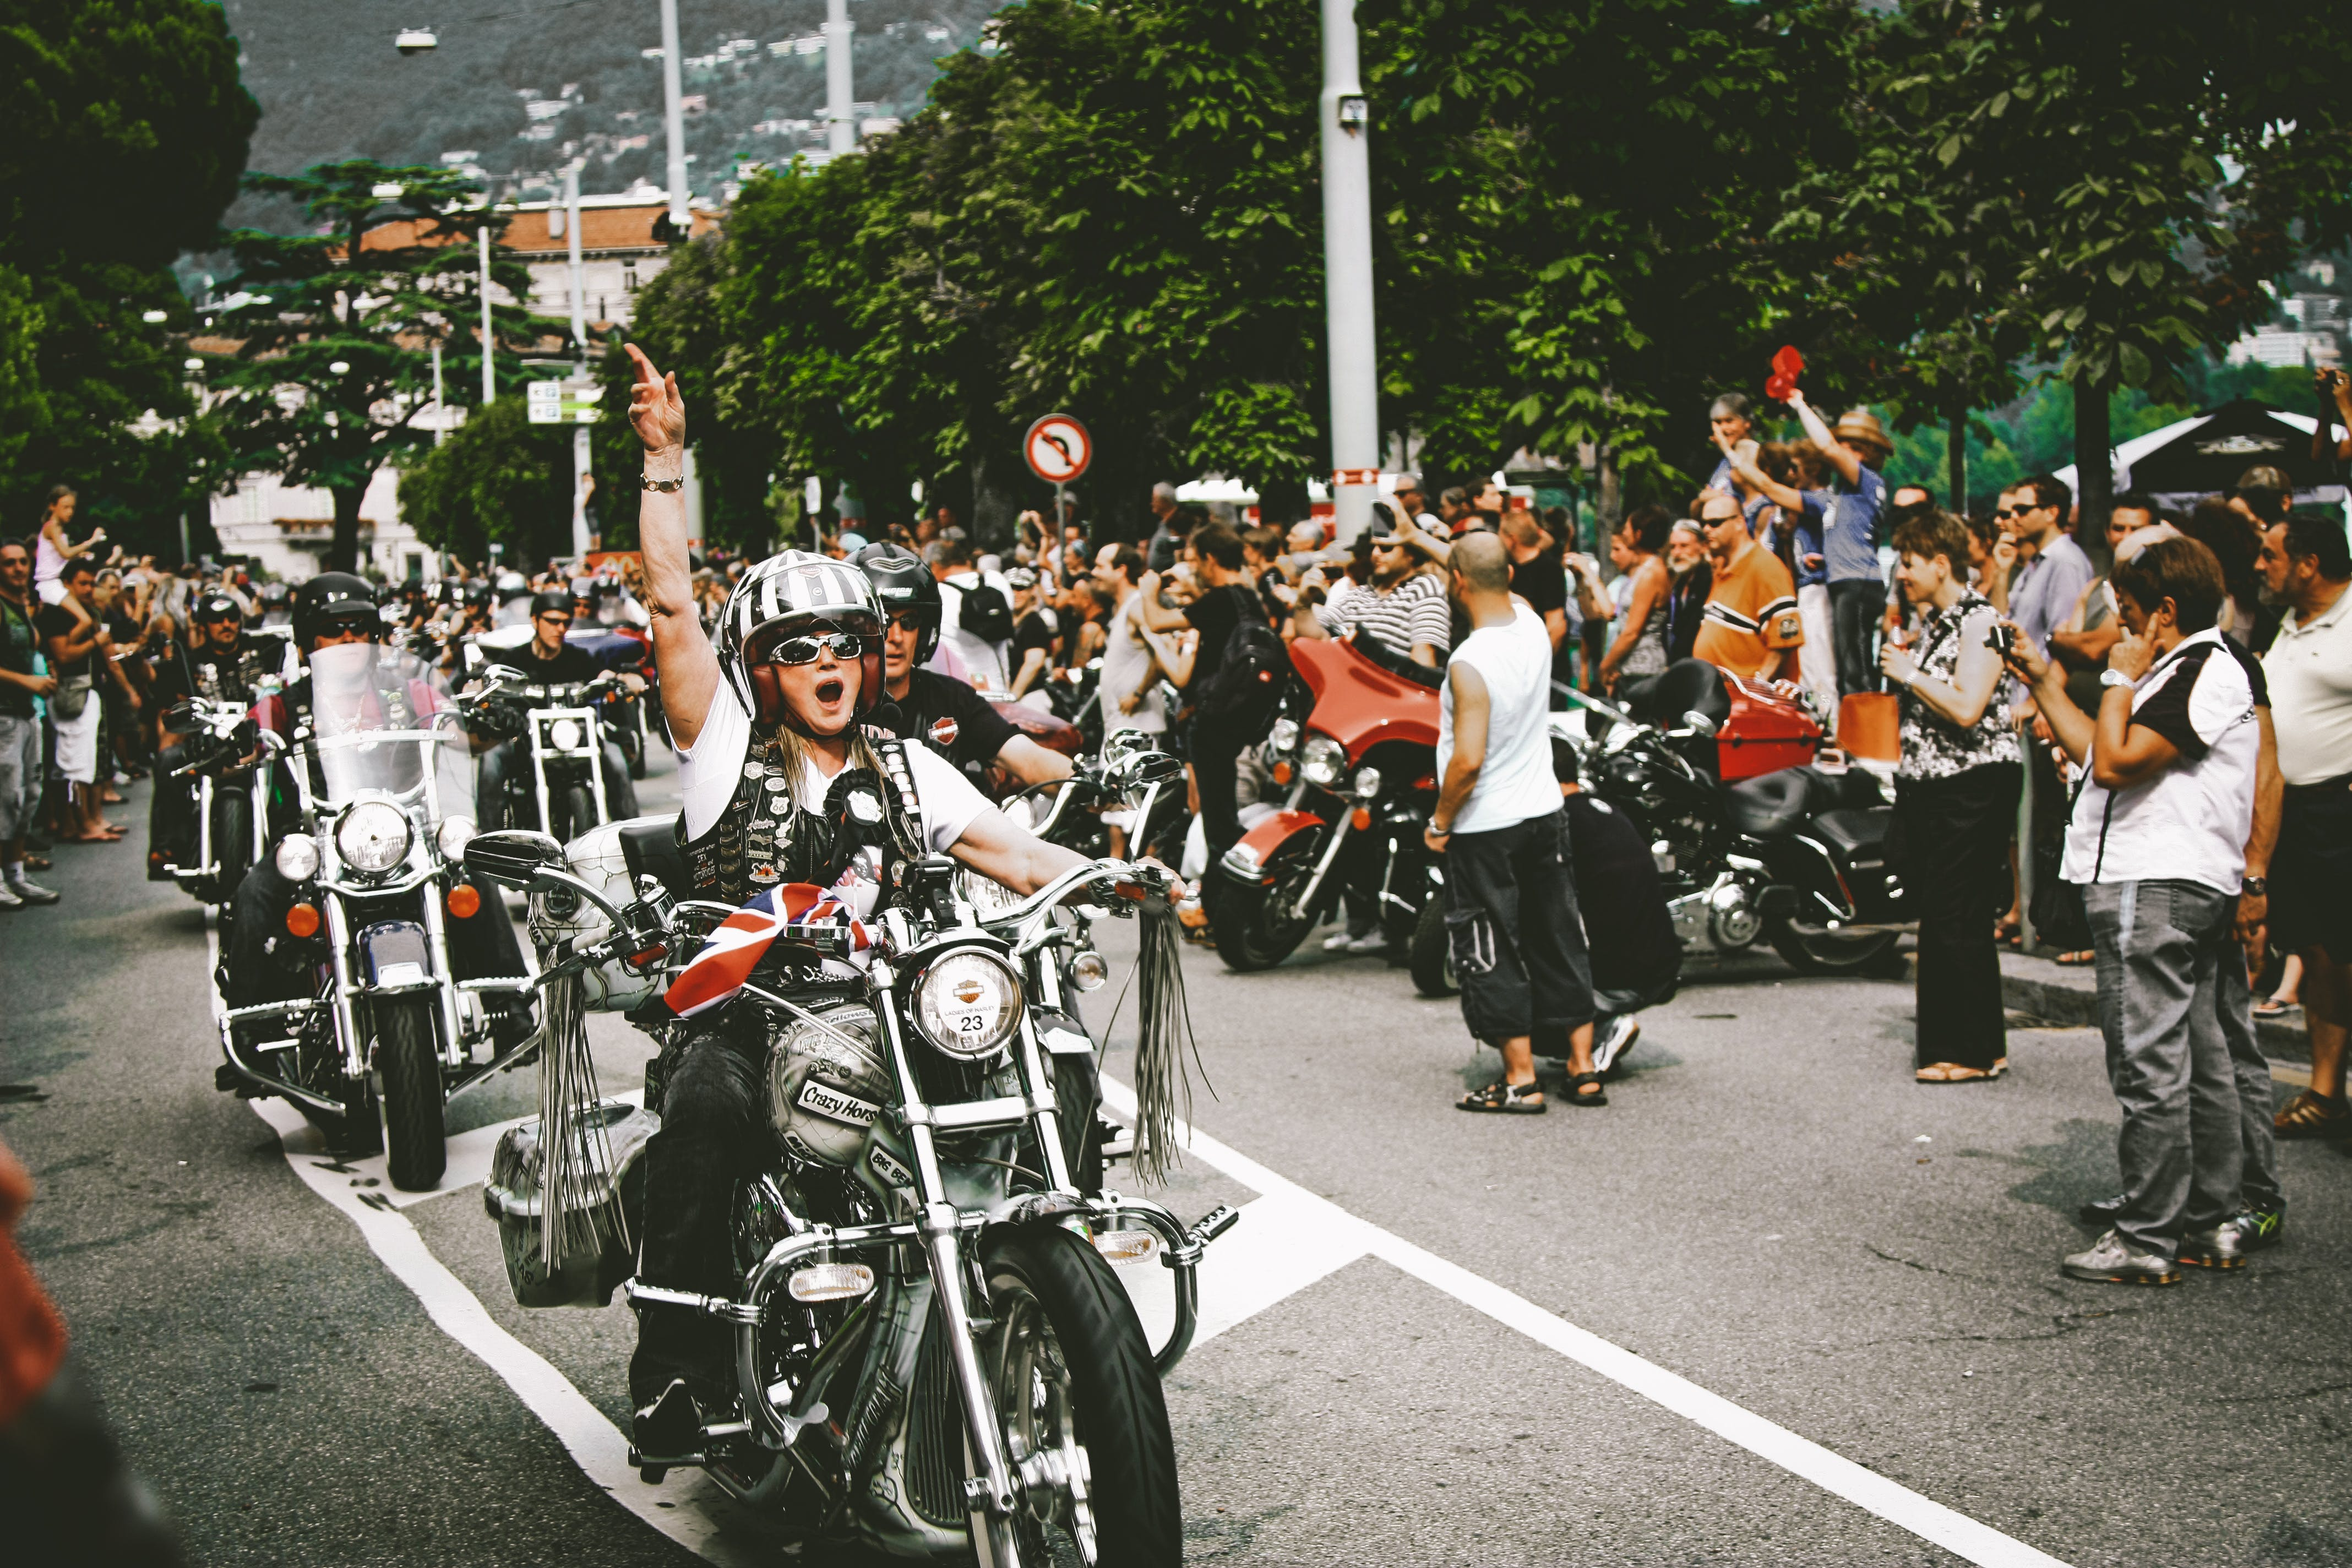 Motorcycle Parade